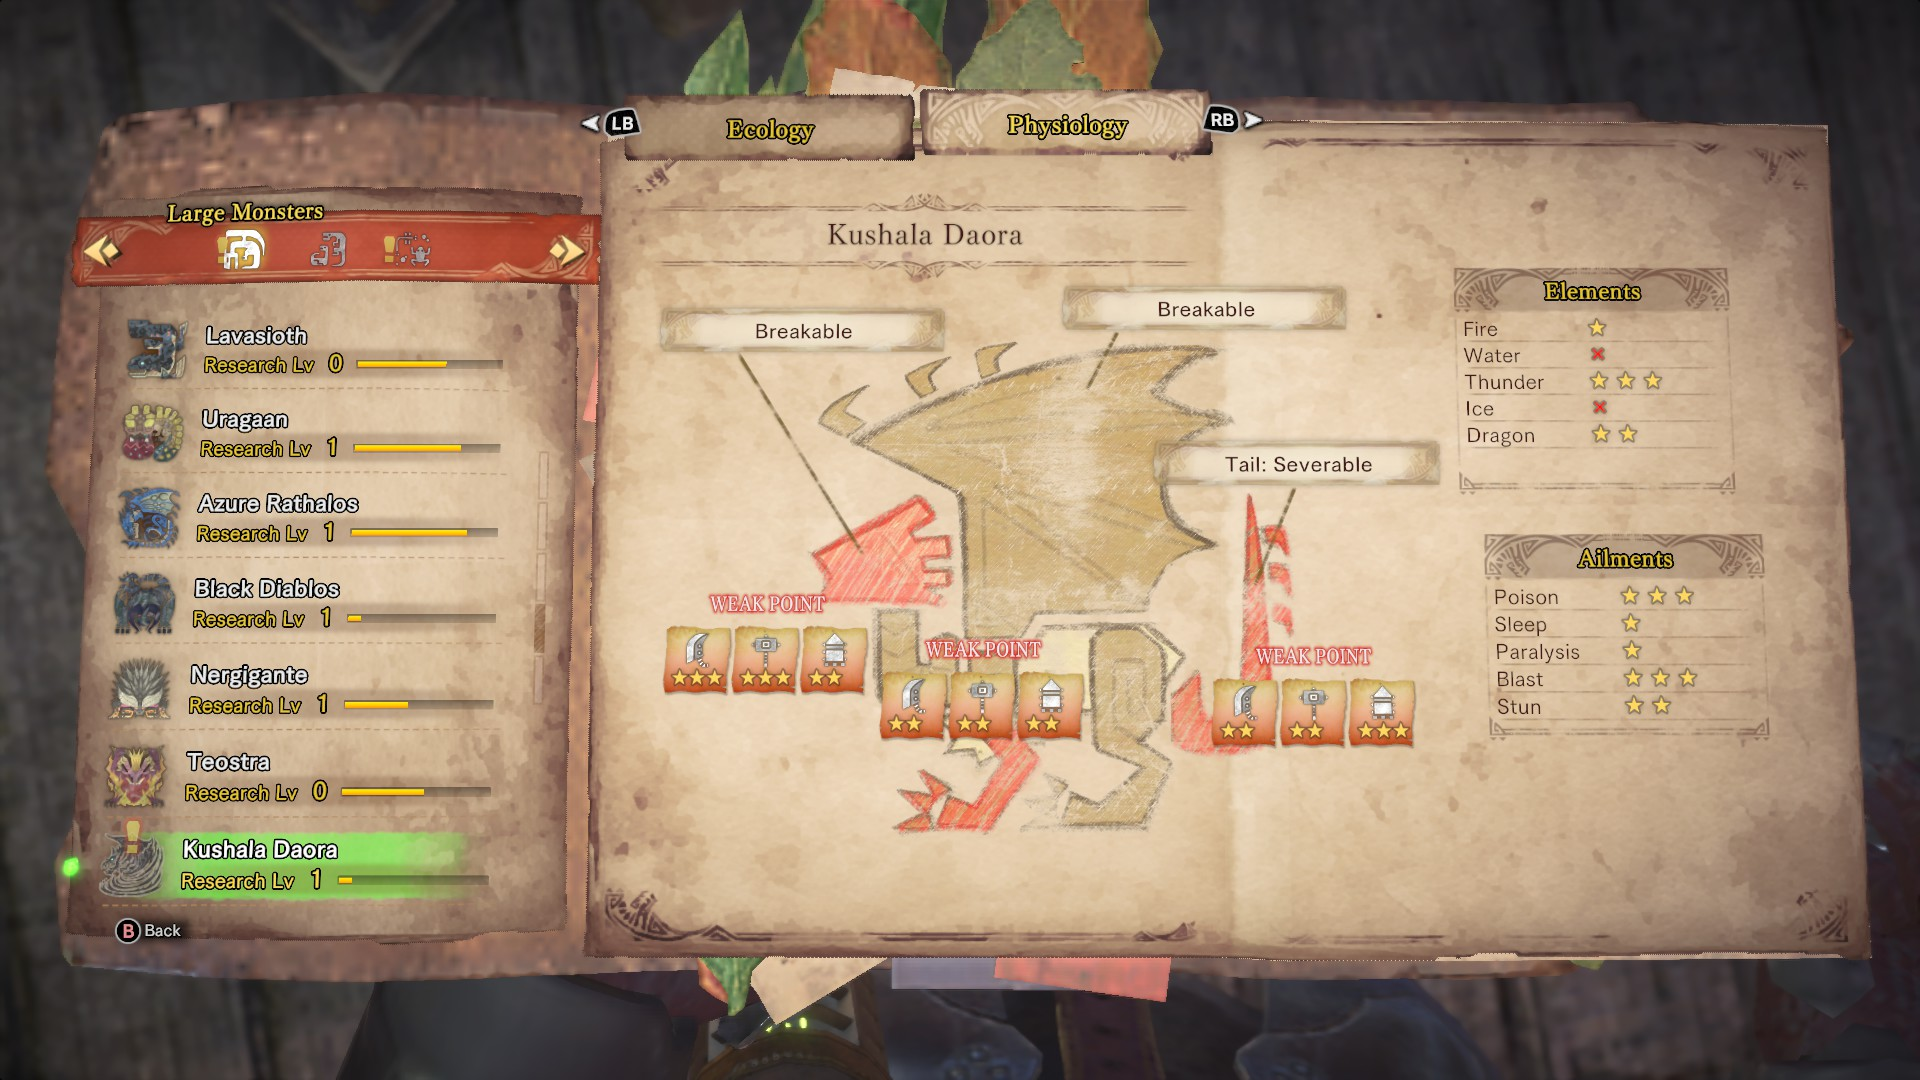 Kushala Daora's entry in the monster field guide.